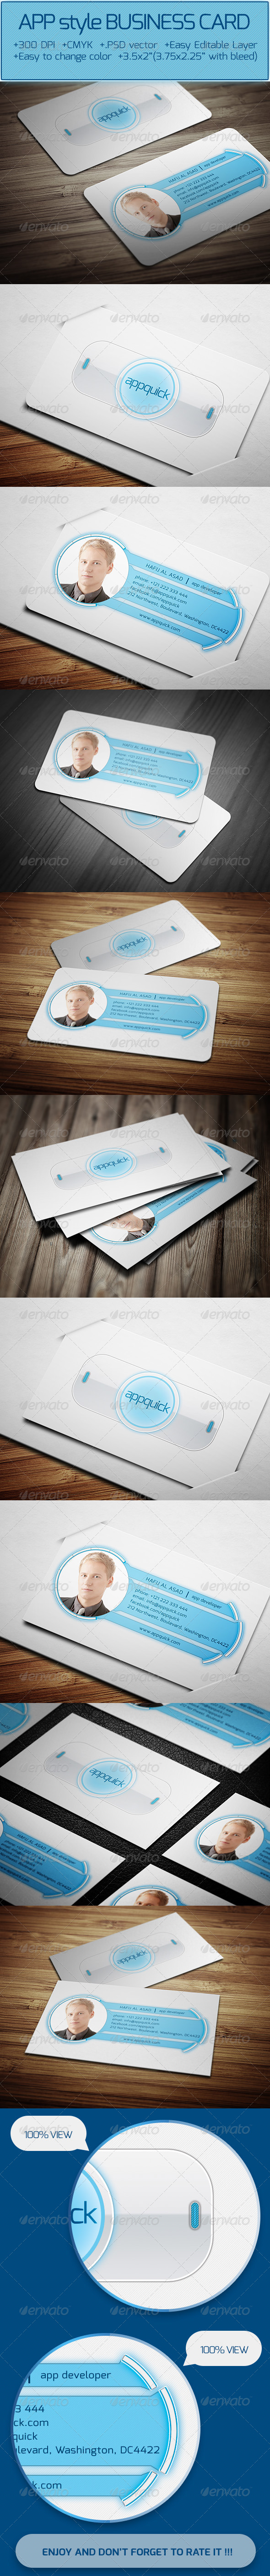 GraphicRiver APP style Business Card 6166853